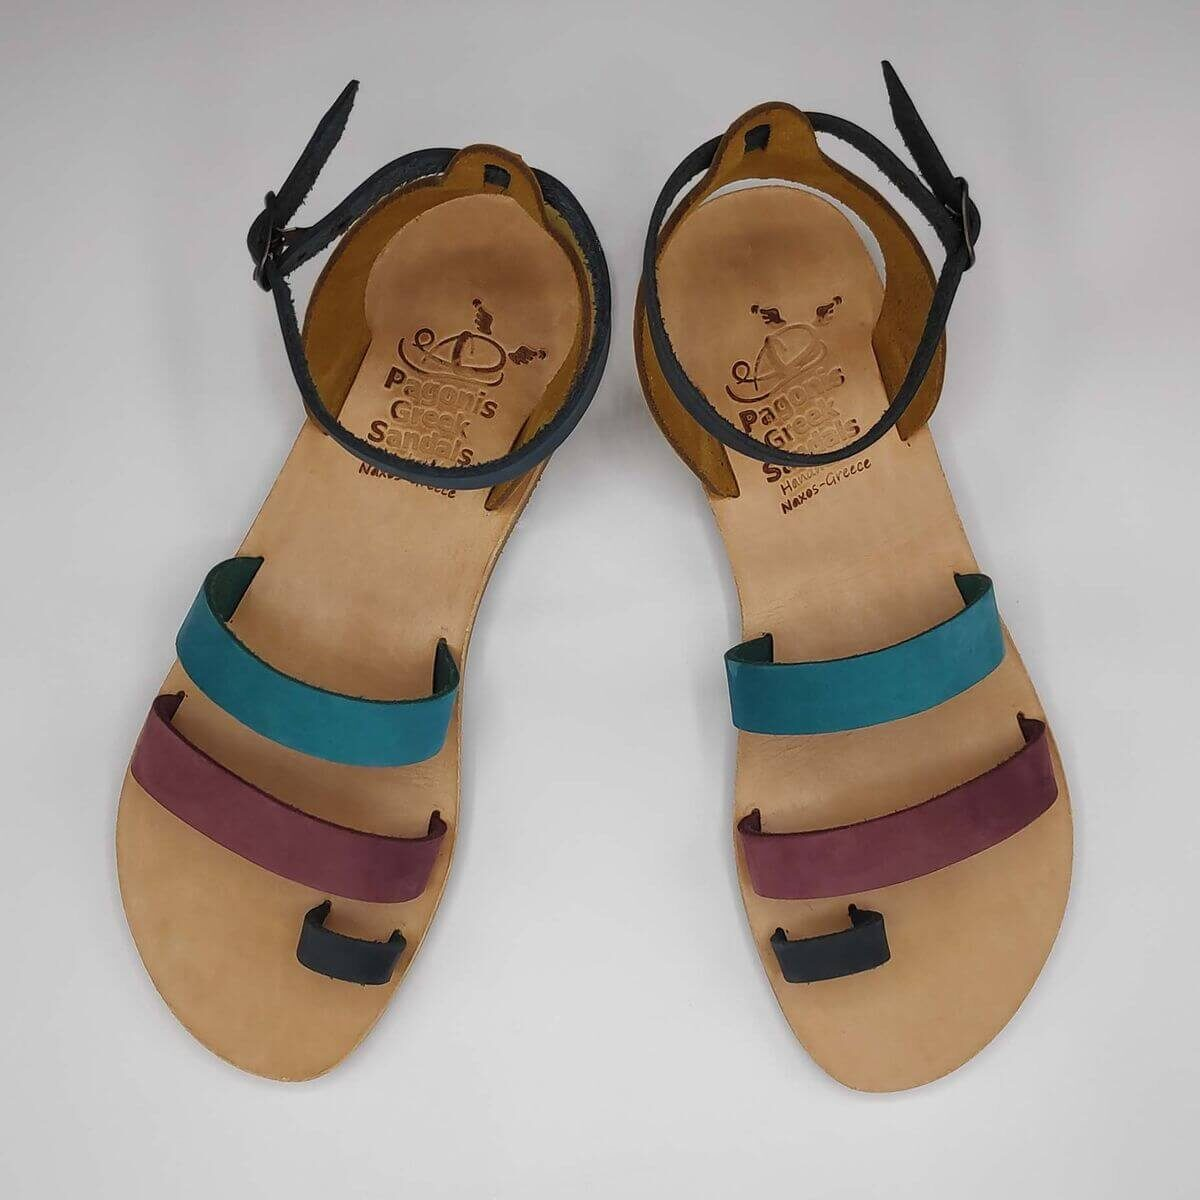 multi-colour nubuck leather dressy sandals with two straps, toe ring and high ankle strap, top view